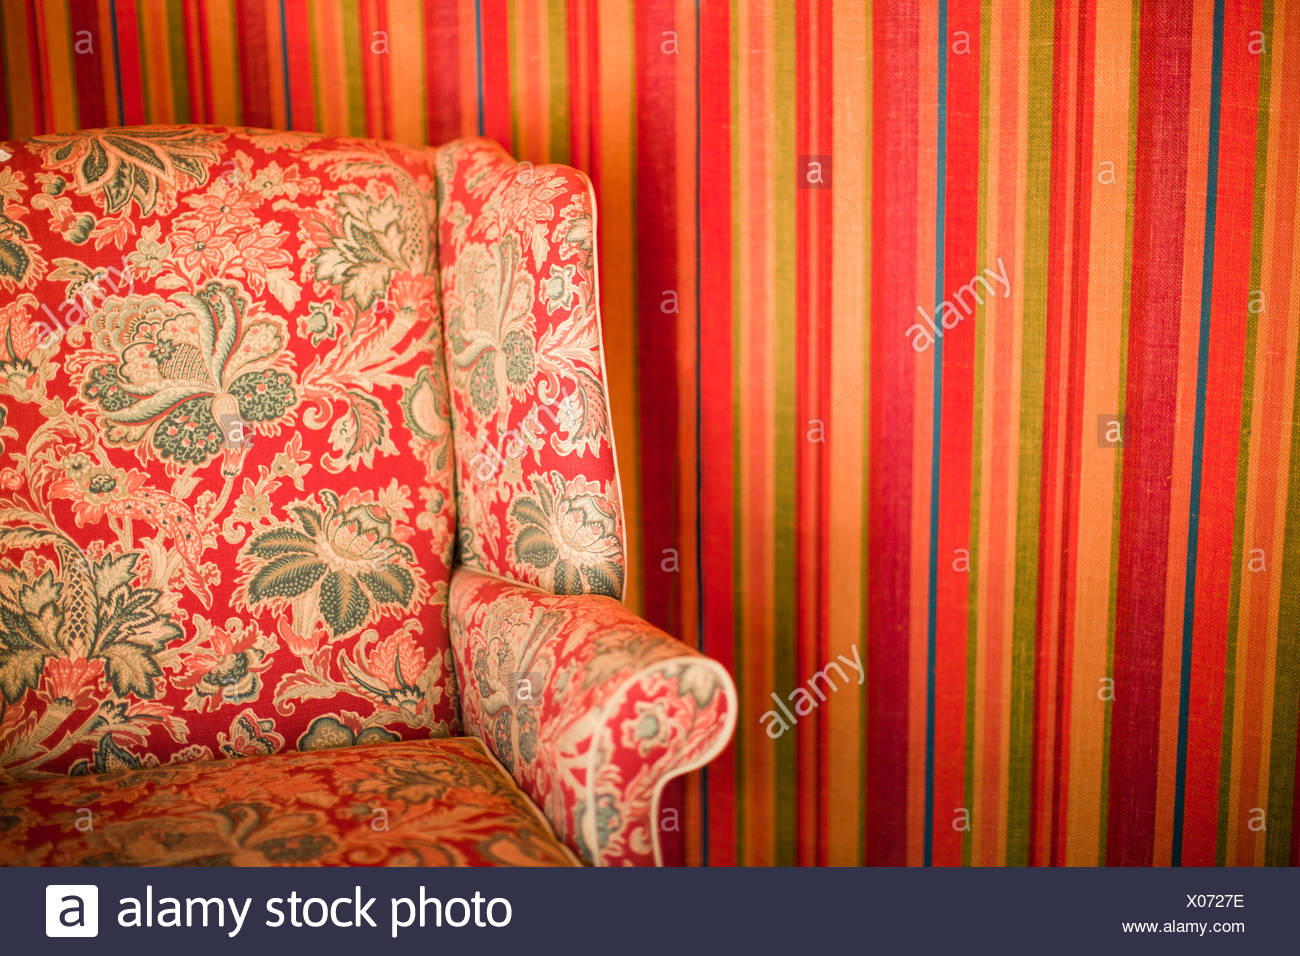 Floral patterned chair against striped wall - Stock Image